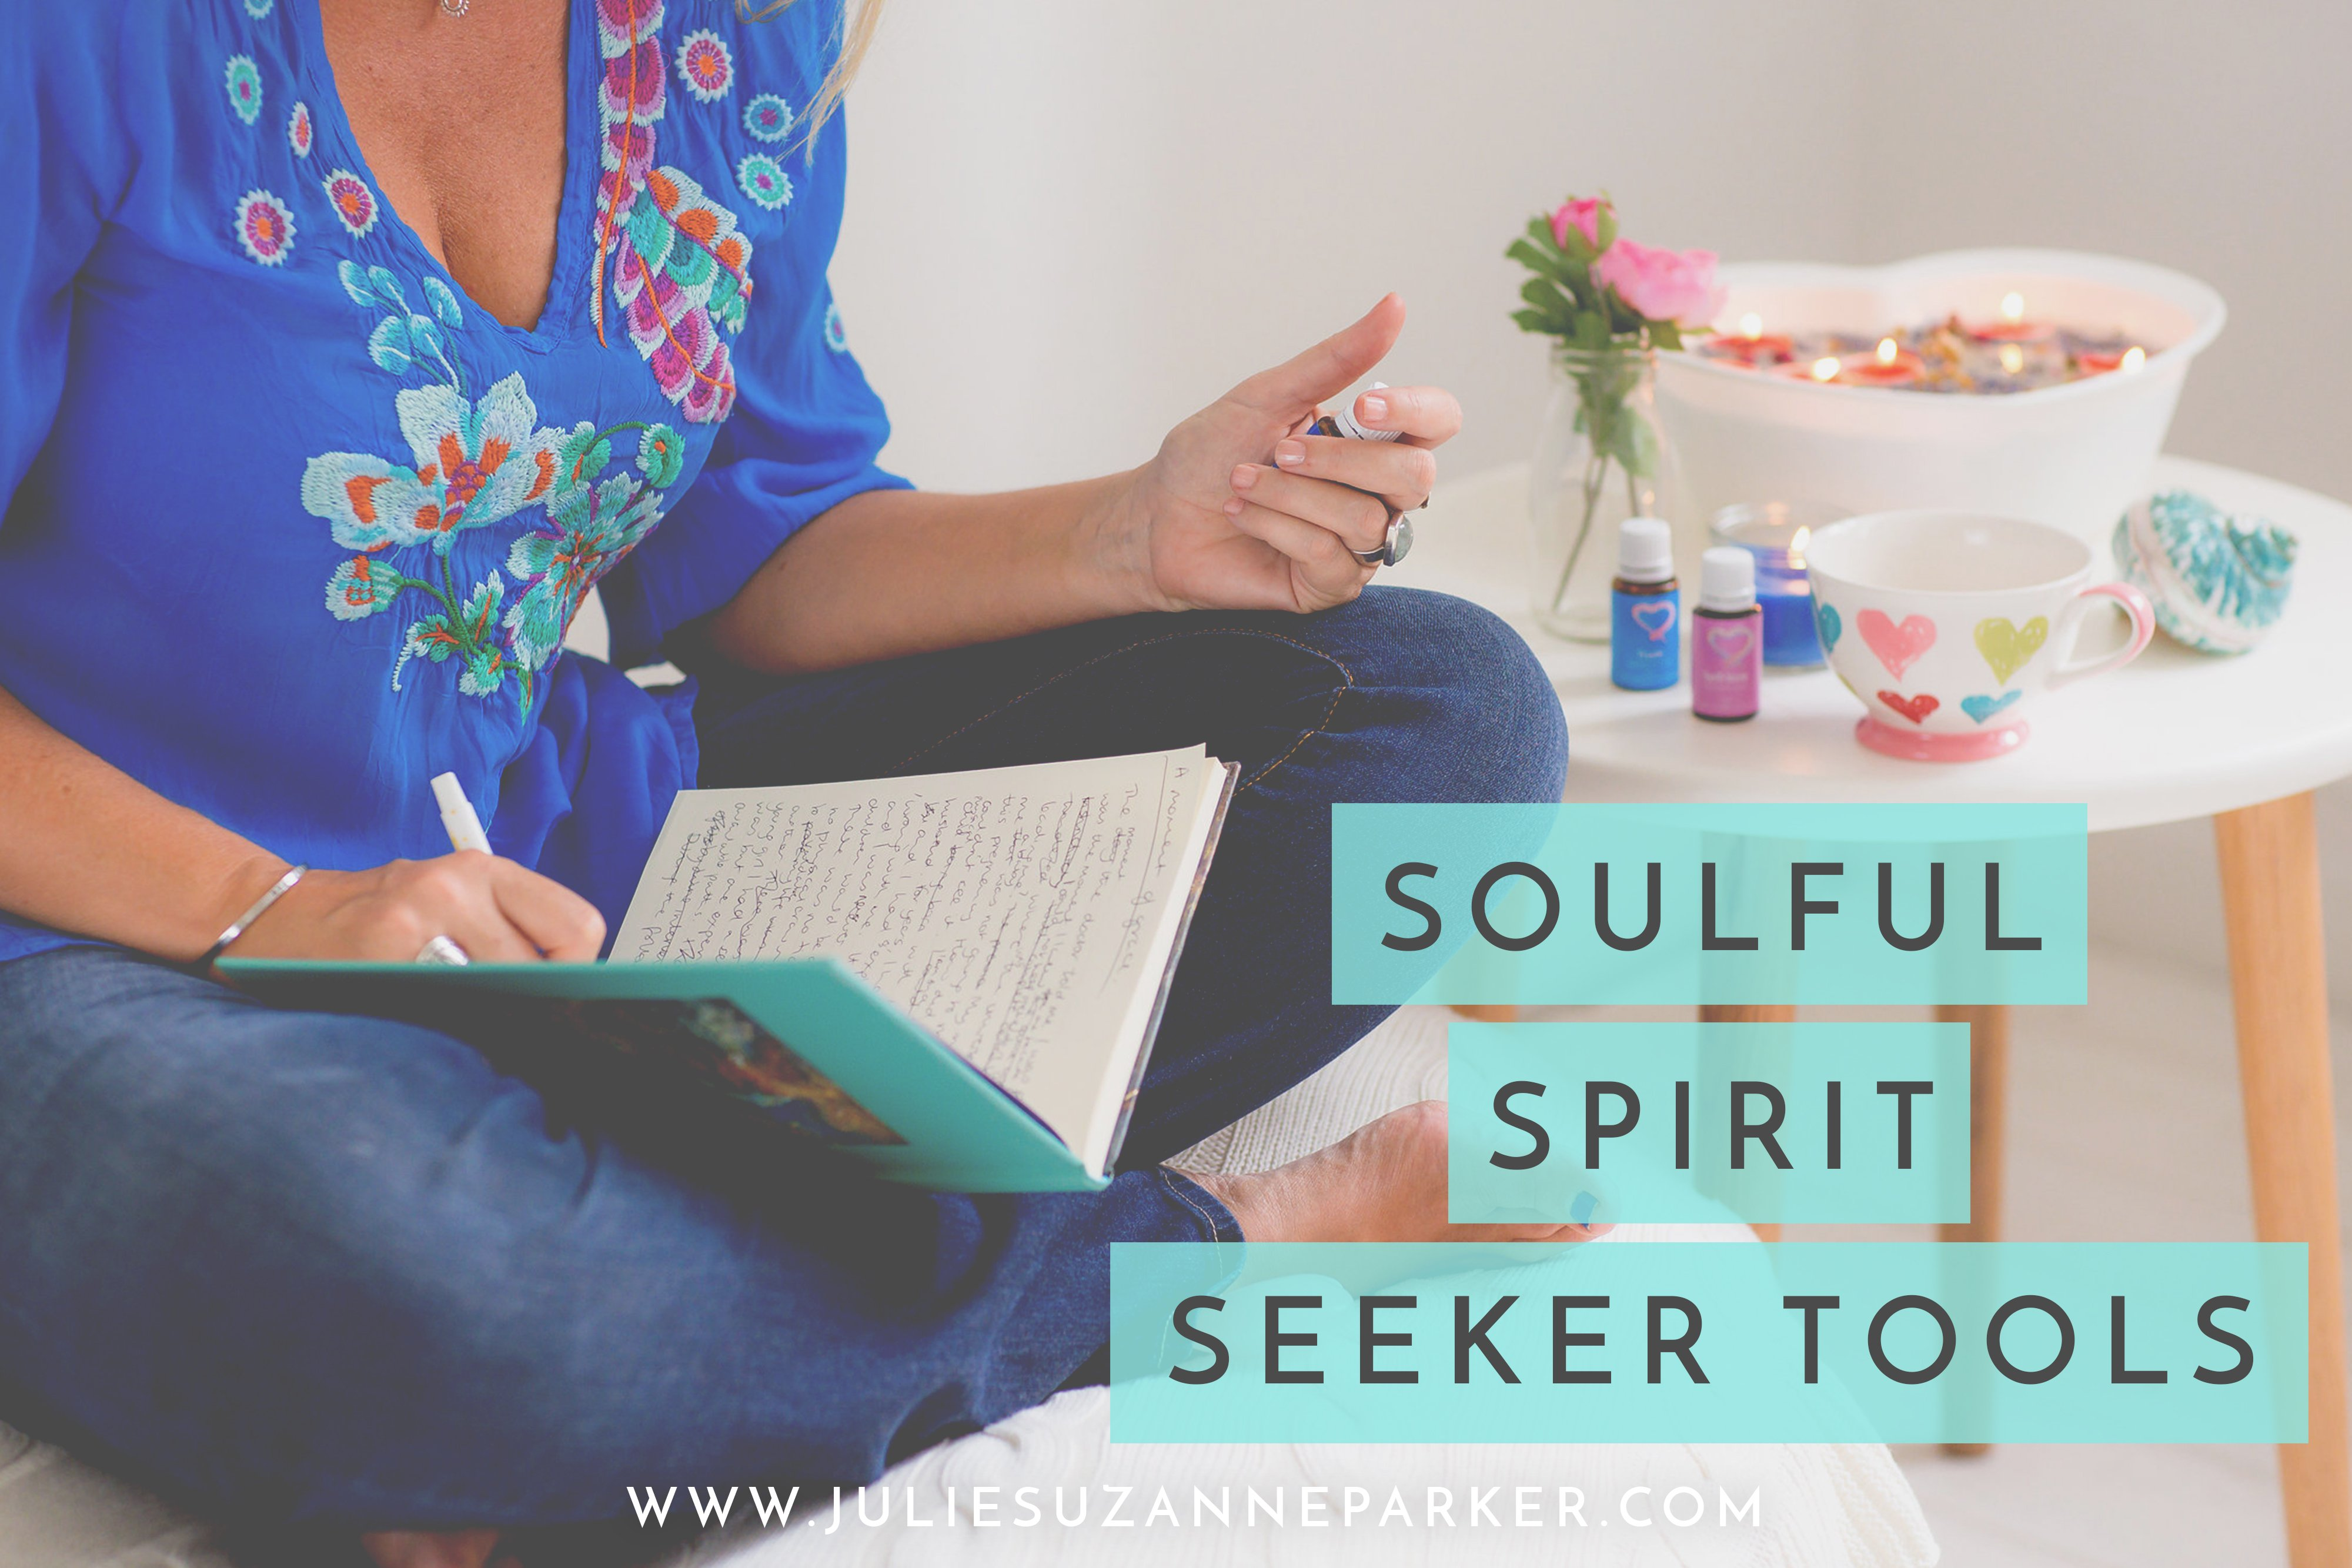 Soulful Spirit Seeker Tools (And a Sacred Self Giveaway!)